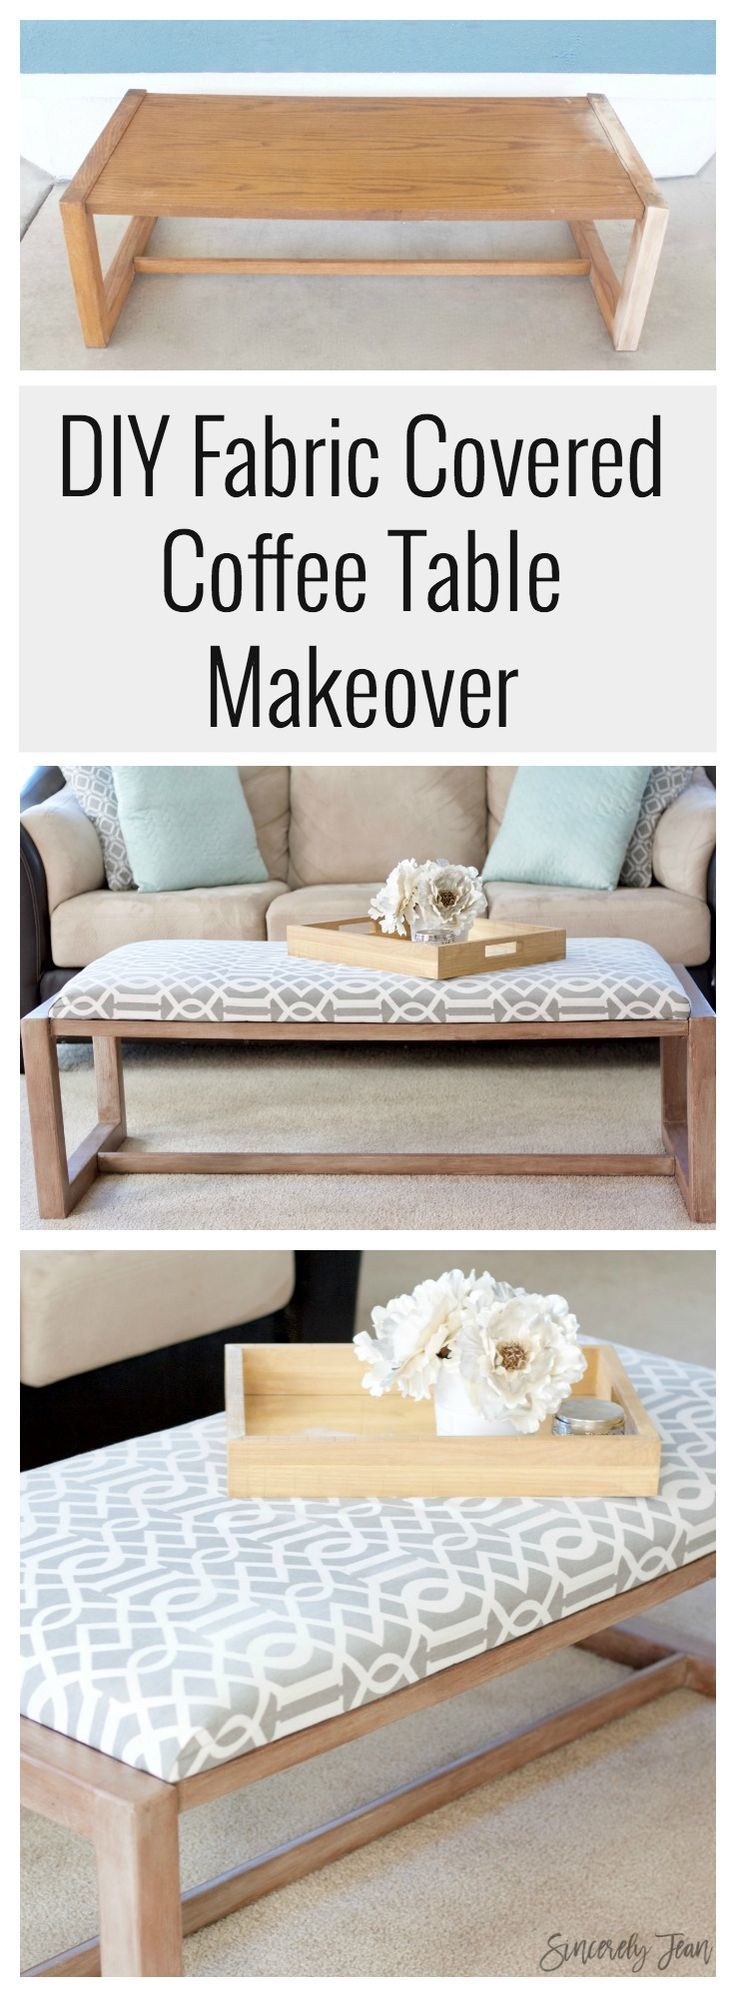 Diy Fabric Covered Coffee Table Makeover Ottoman